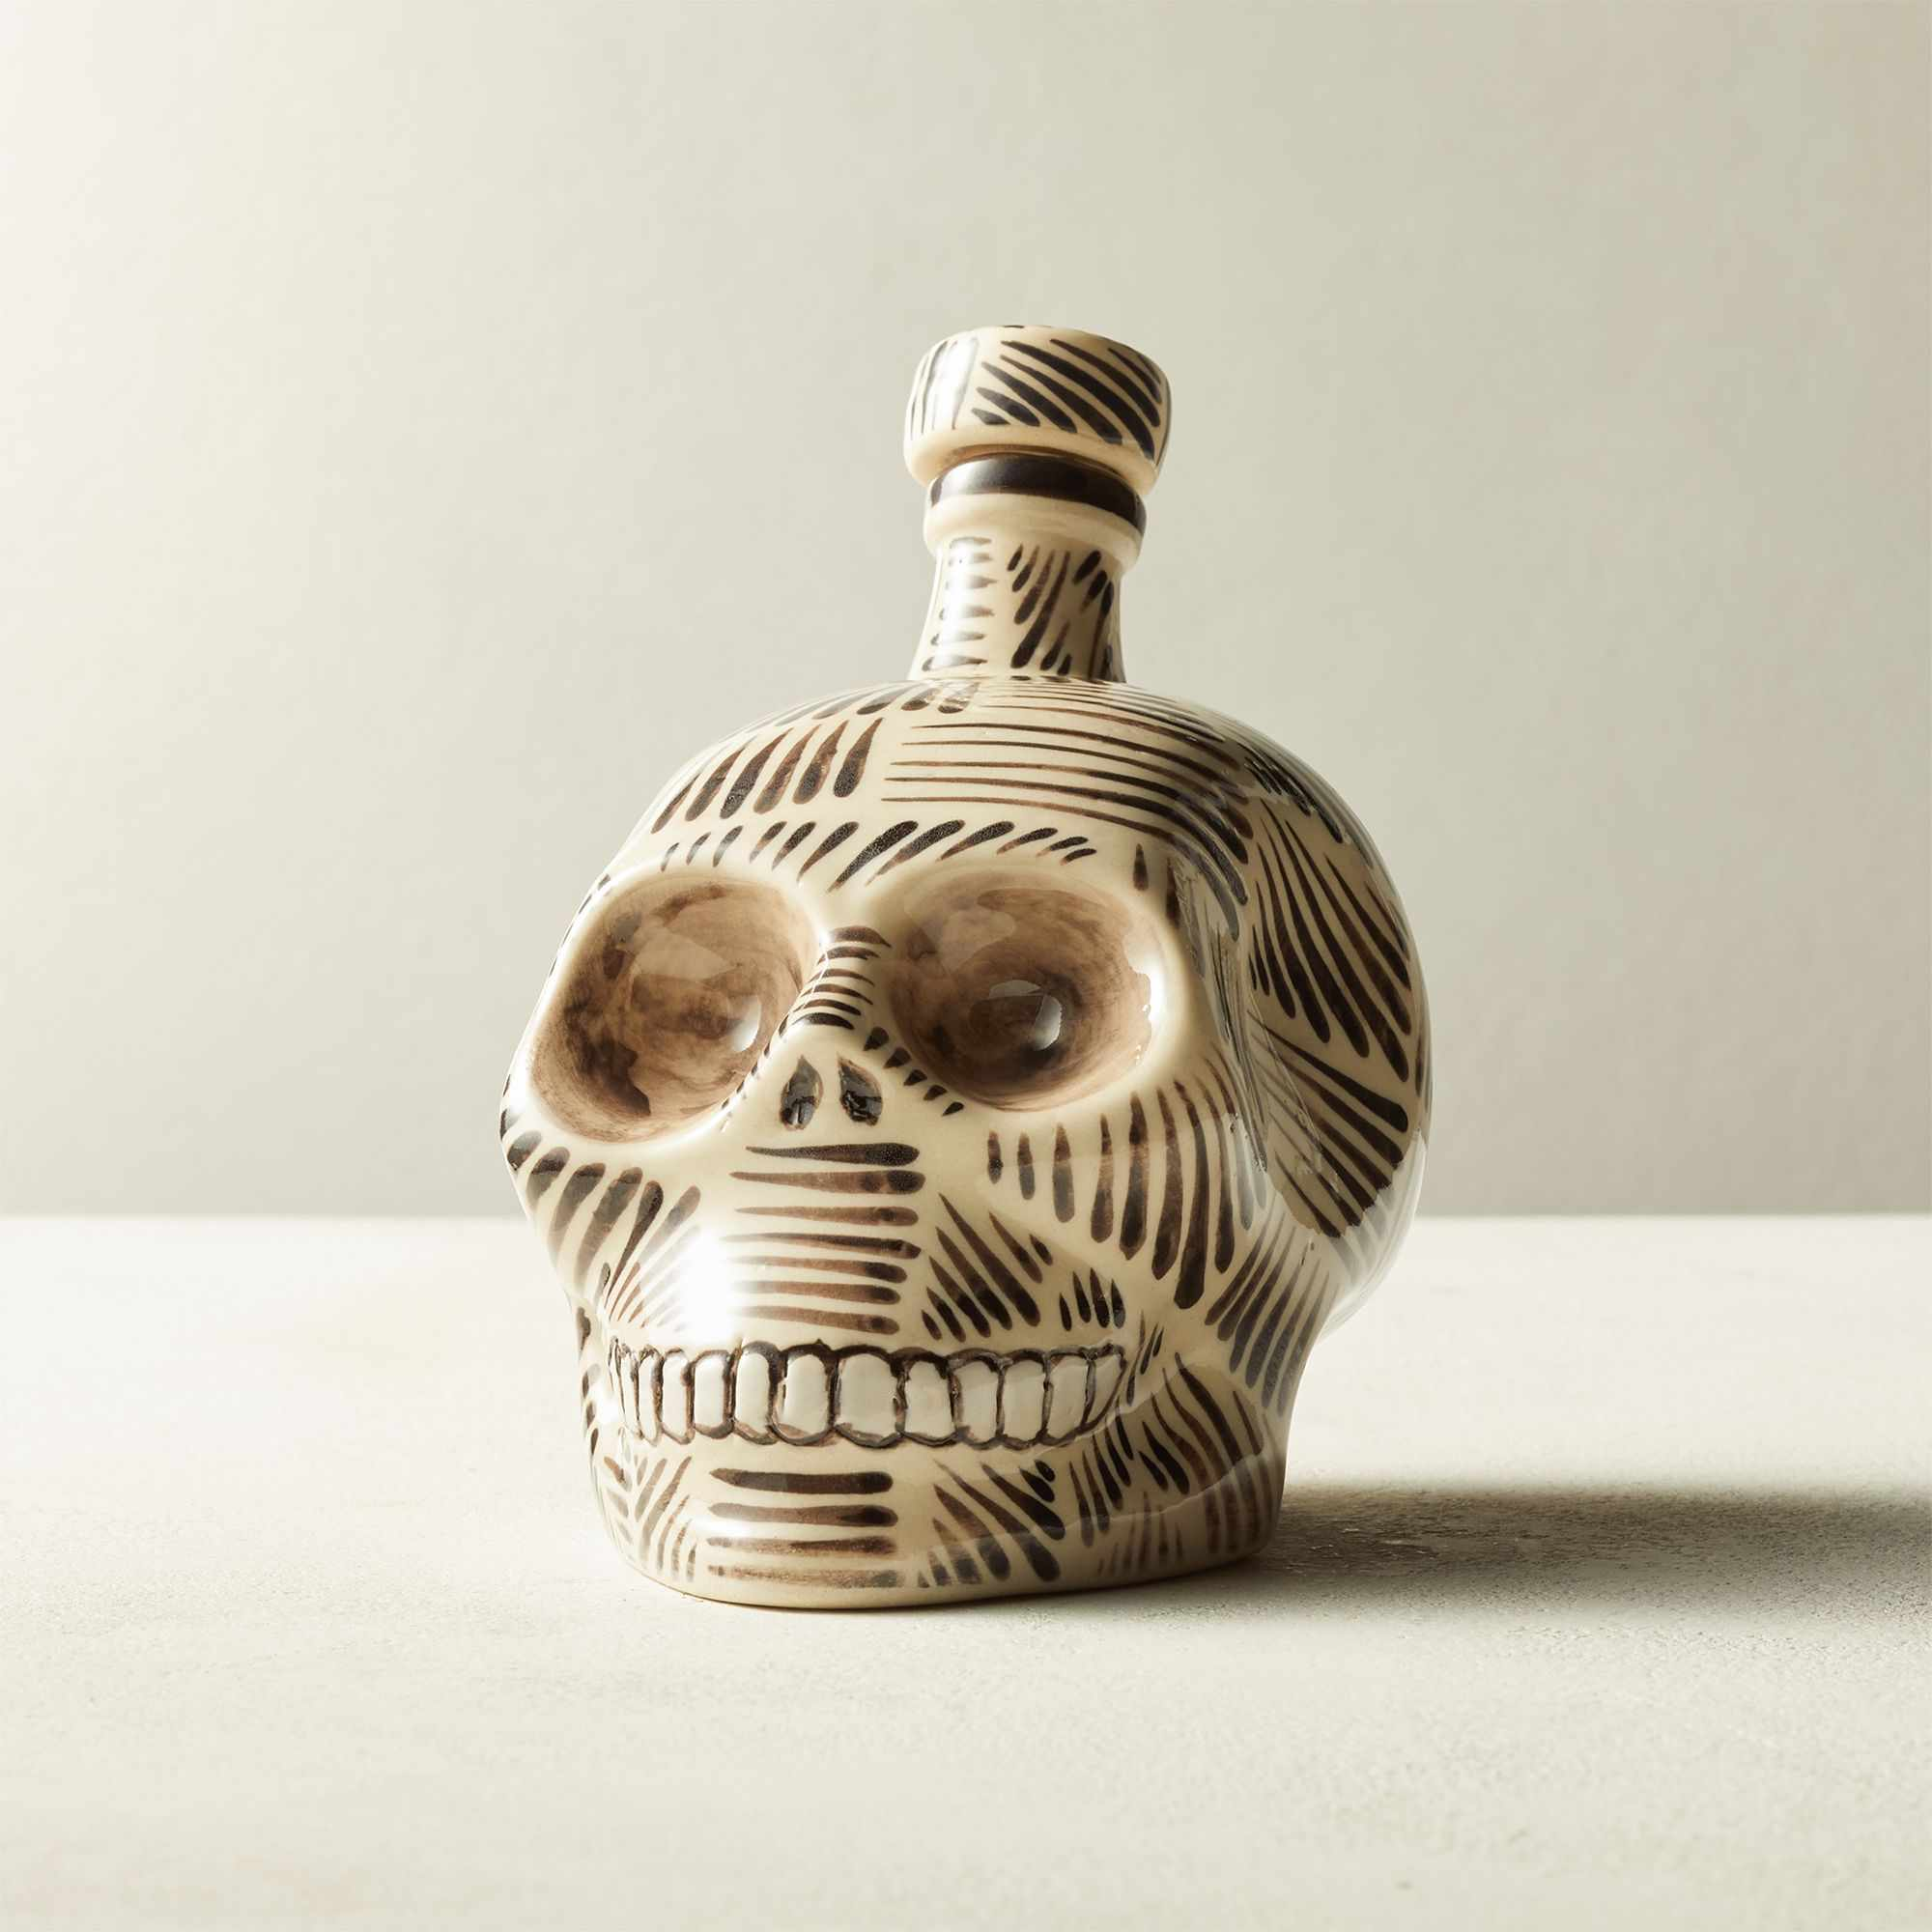 A Mexican skull-shaped tequila decanter by CB2.